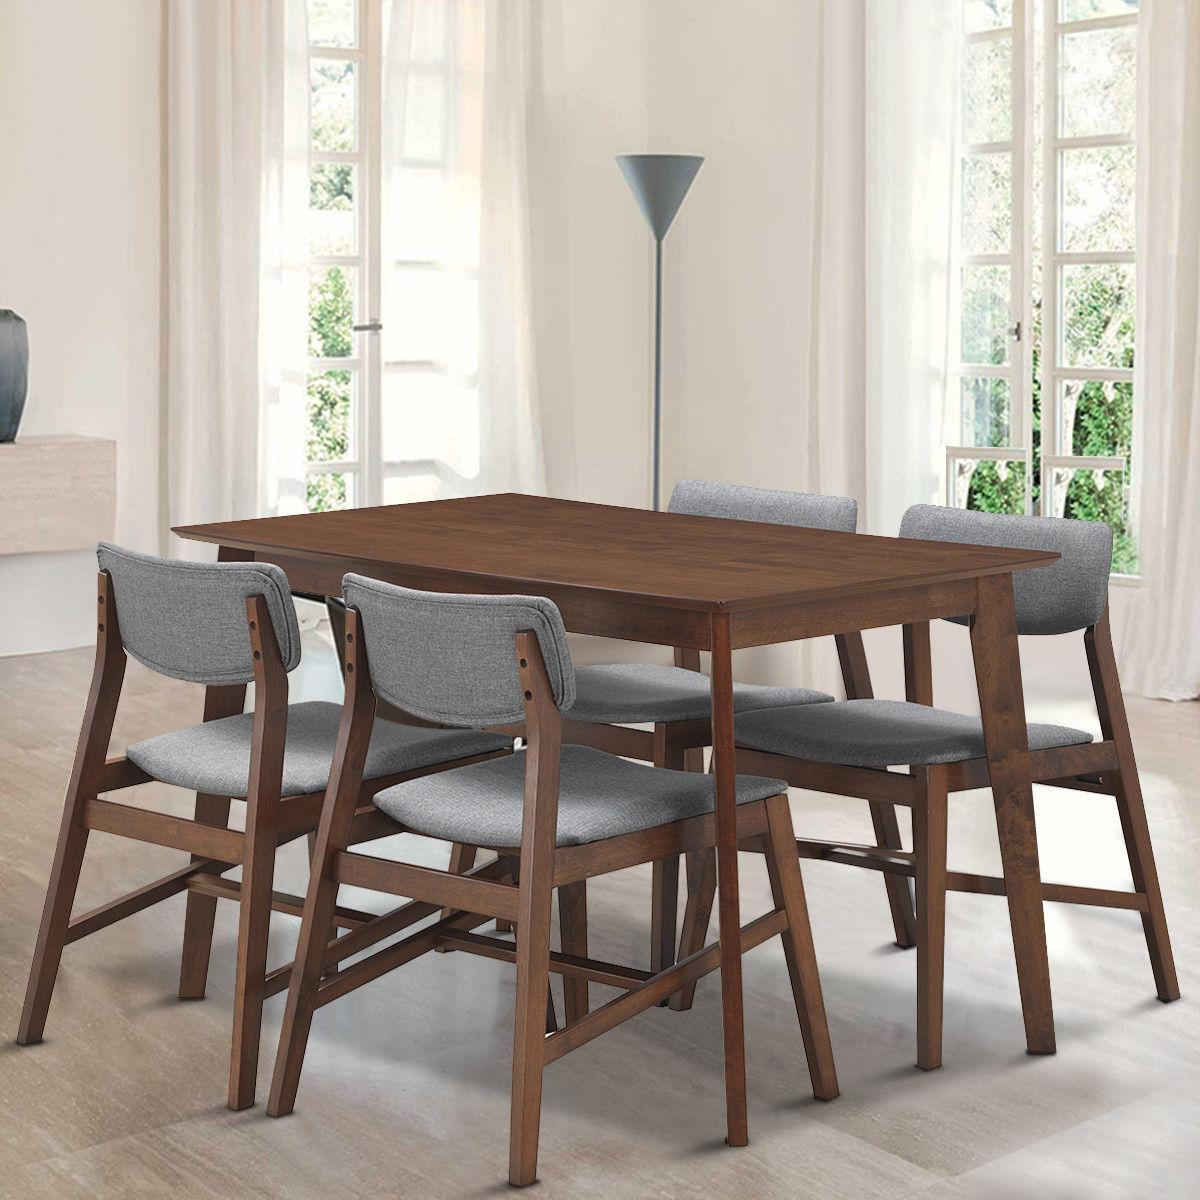 5 Mid Modern Dining Table Set Kitchen Upholstered Chairs